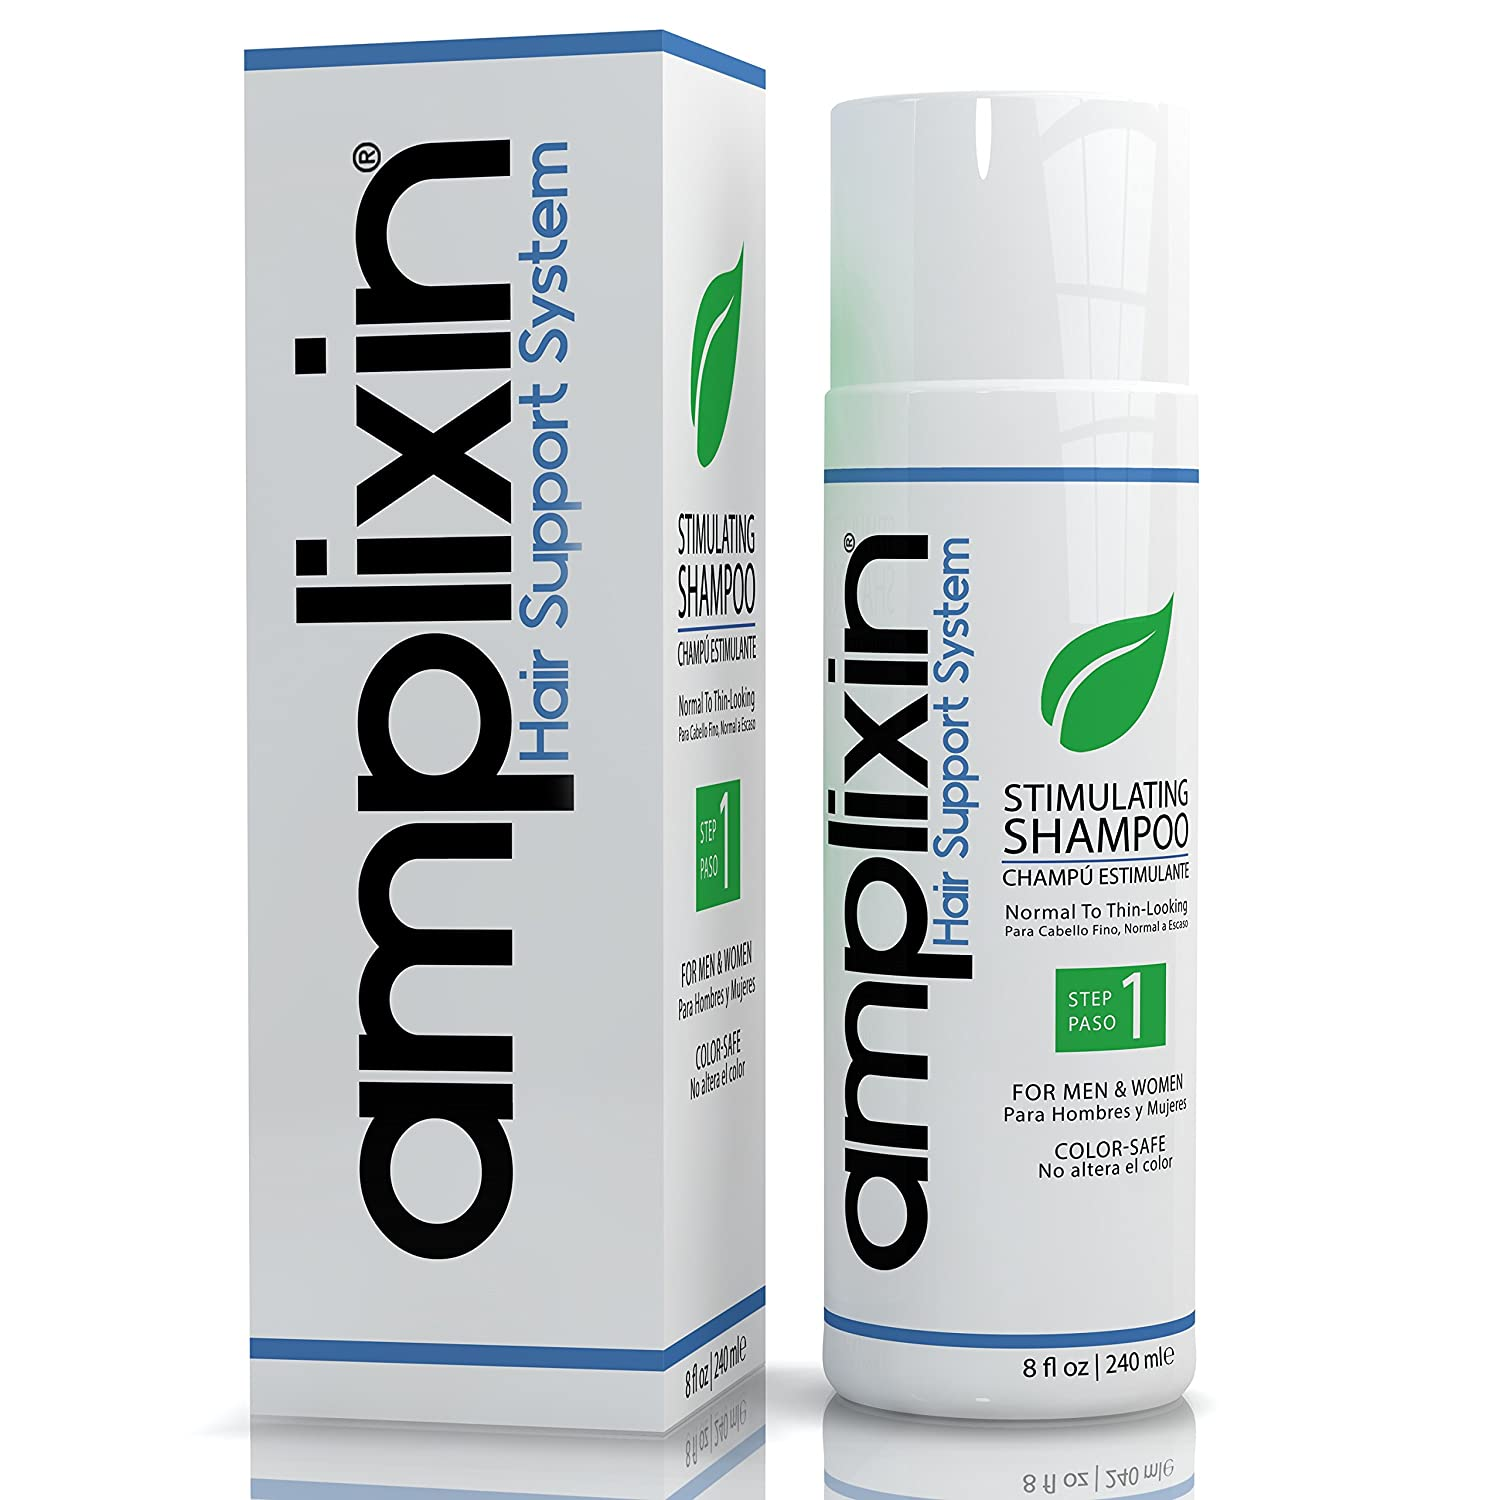 Amplixin Stimulating Hair Growth Shampoo for Women & Men, Anti Hair Loss Product for Normal To Thinning Hair S1001